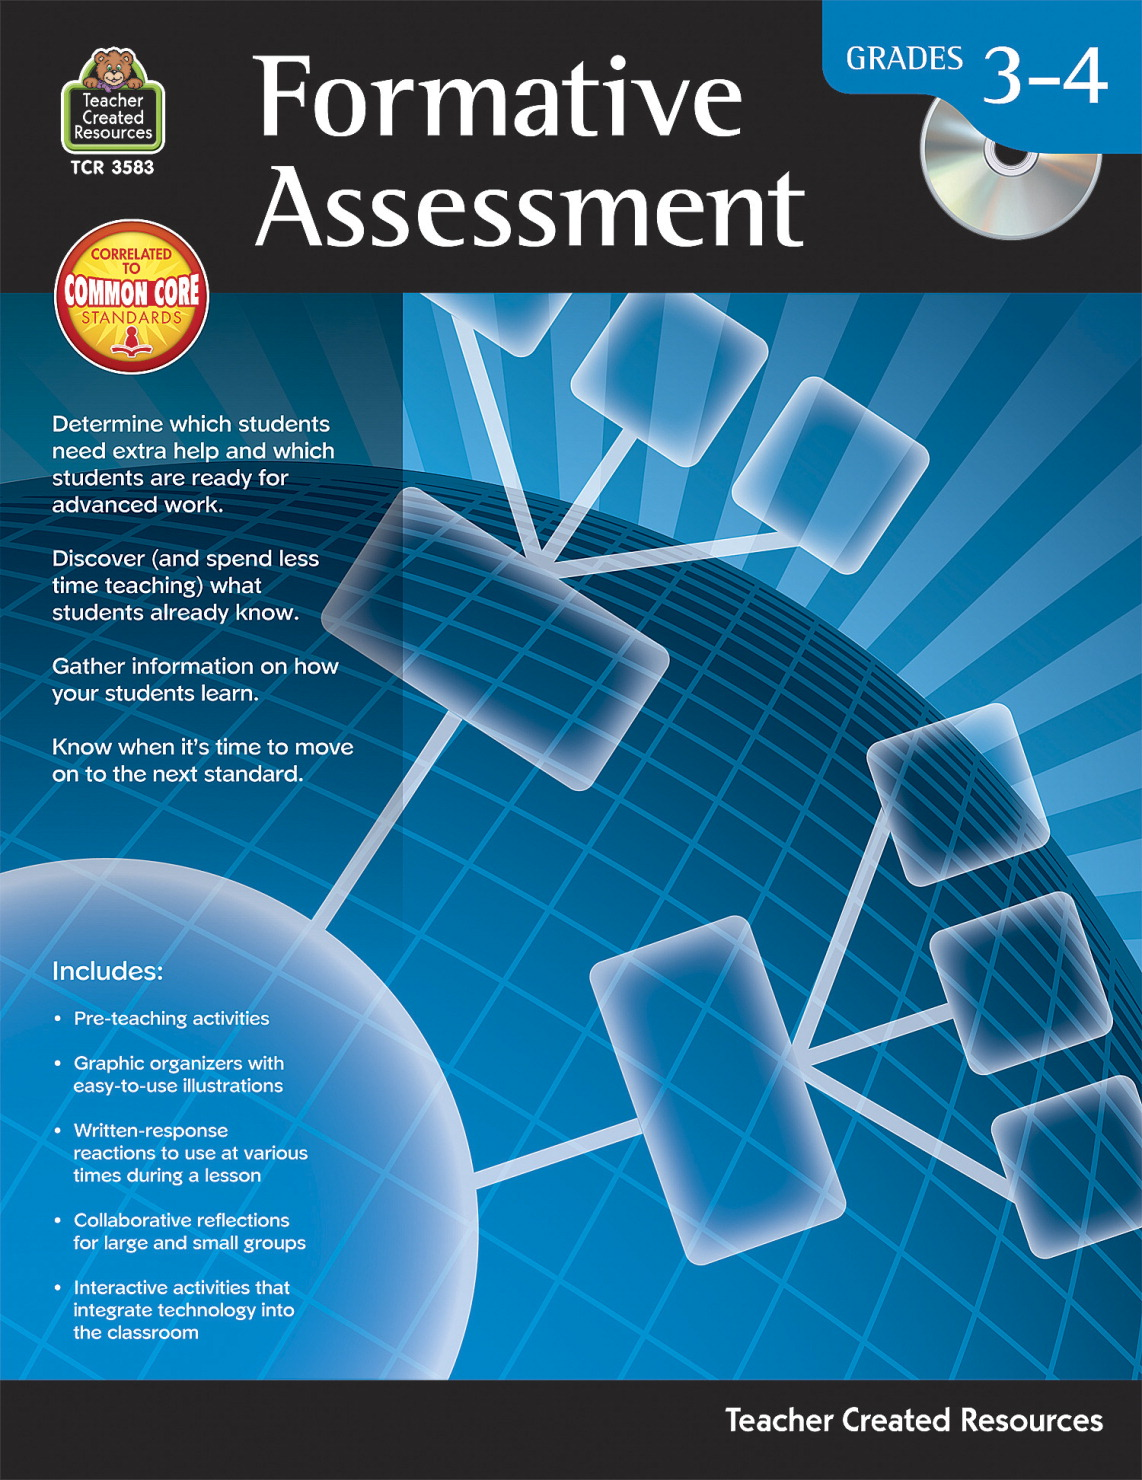 critical thinking and formative assessments Formative assessment, including diagnostic testing, is a range of formal and informal assessment procedures conducted by teachers during the learning process in order to modify teaching and learning activities to improve student attainment it typically involves qualitative feedback (rather than scores) for both student and teacher that focuses on.